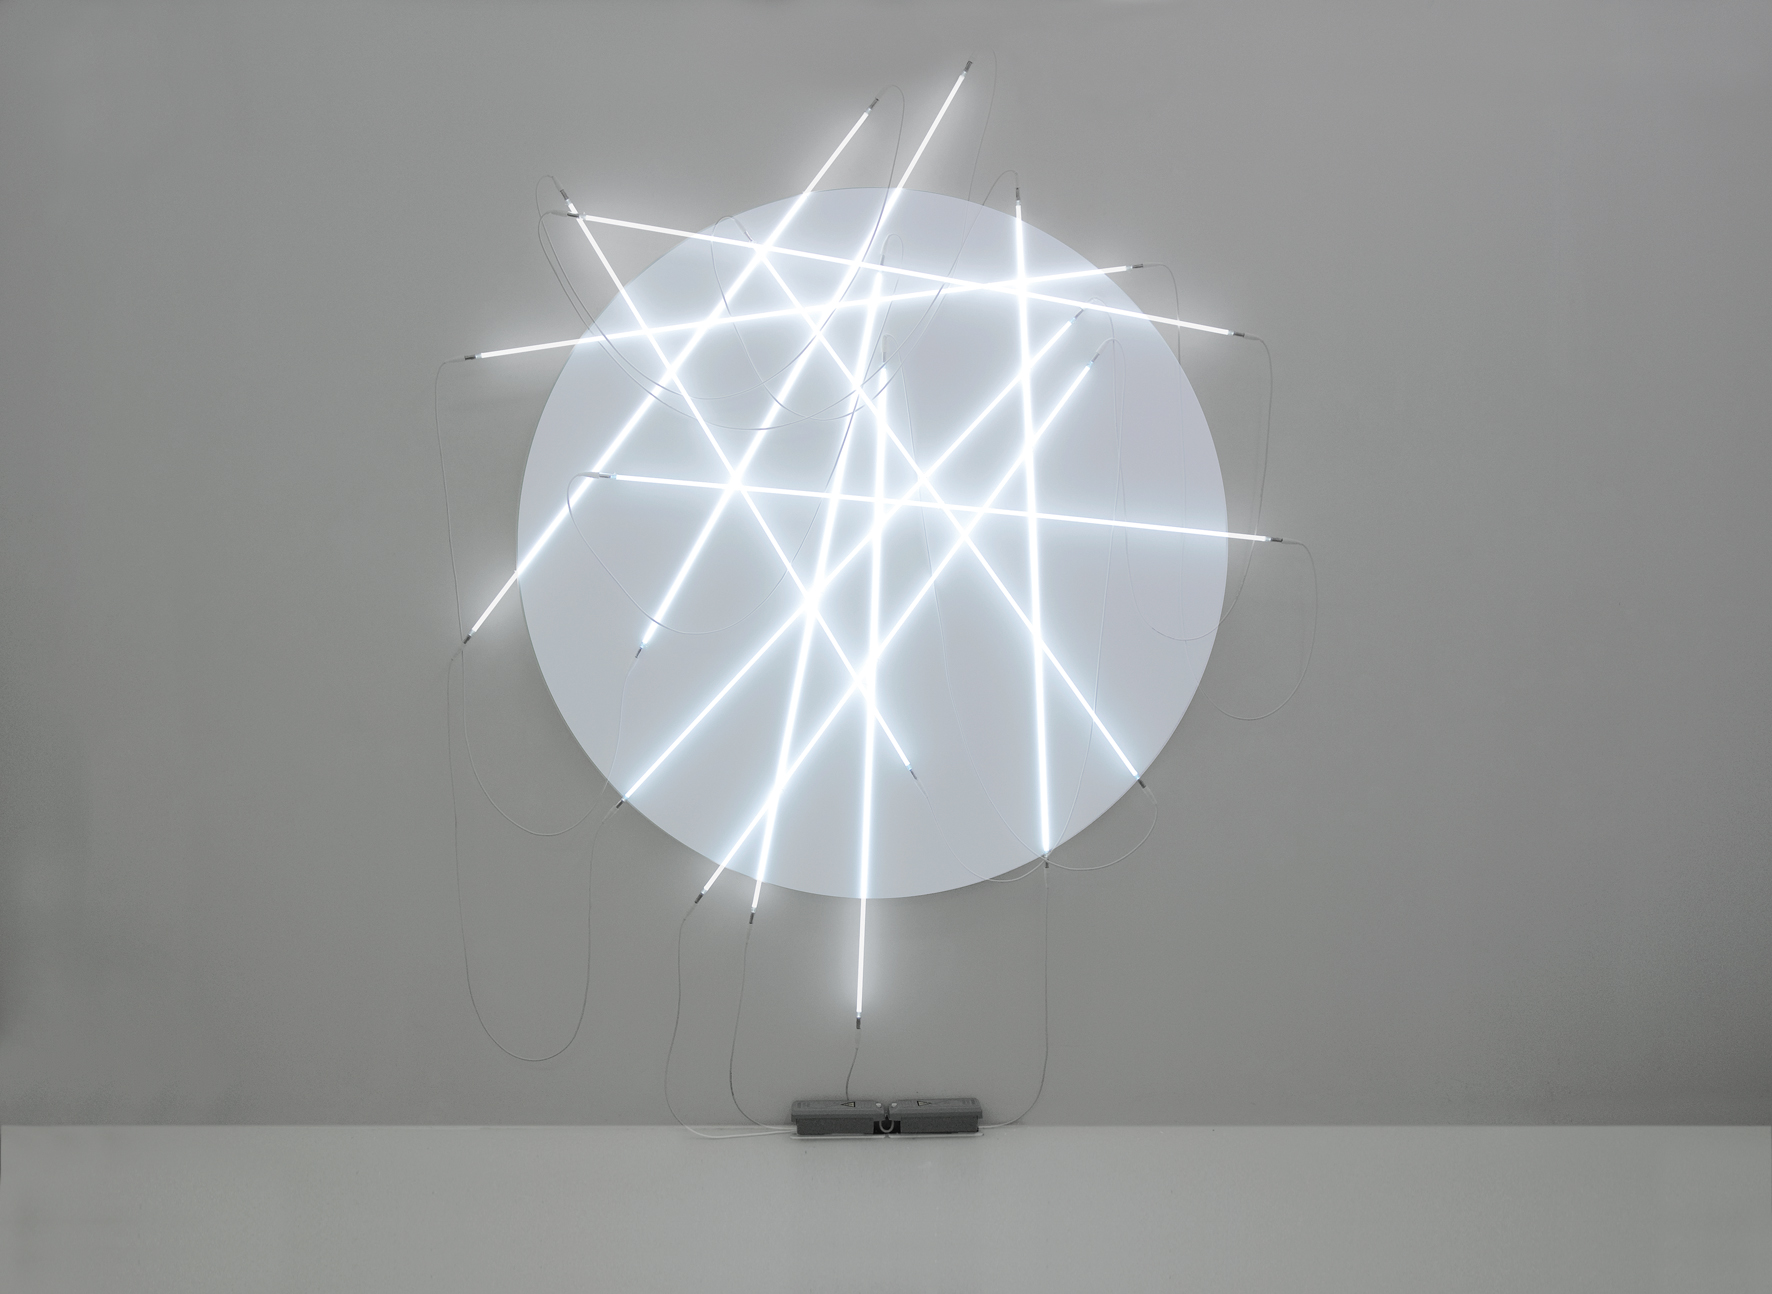 François Morellet - Lunatic weeping and neonly n° 3 - 2010 - courtesy A arte Studio Invernizzi, Milano